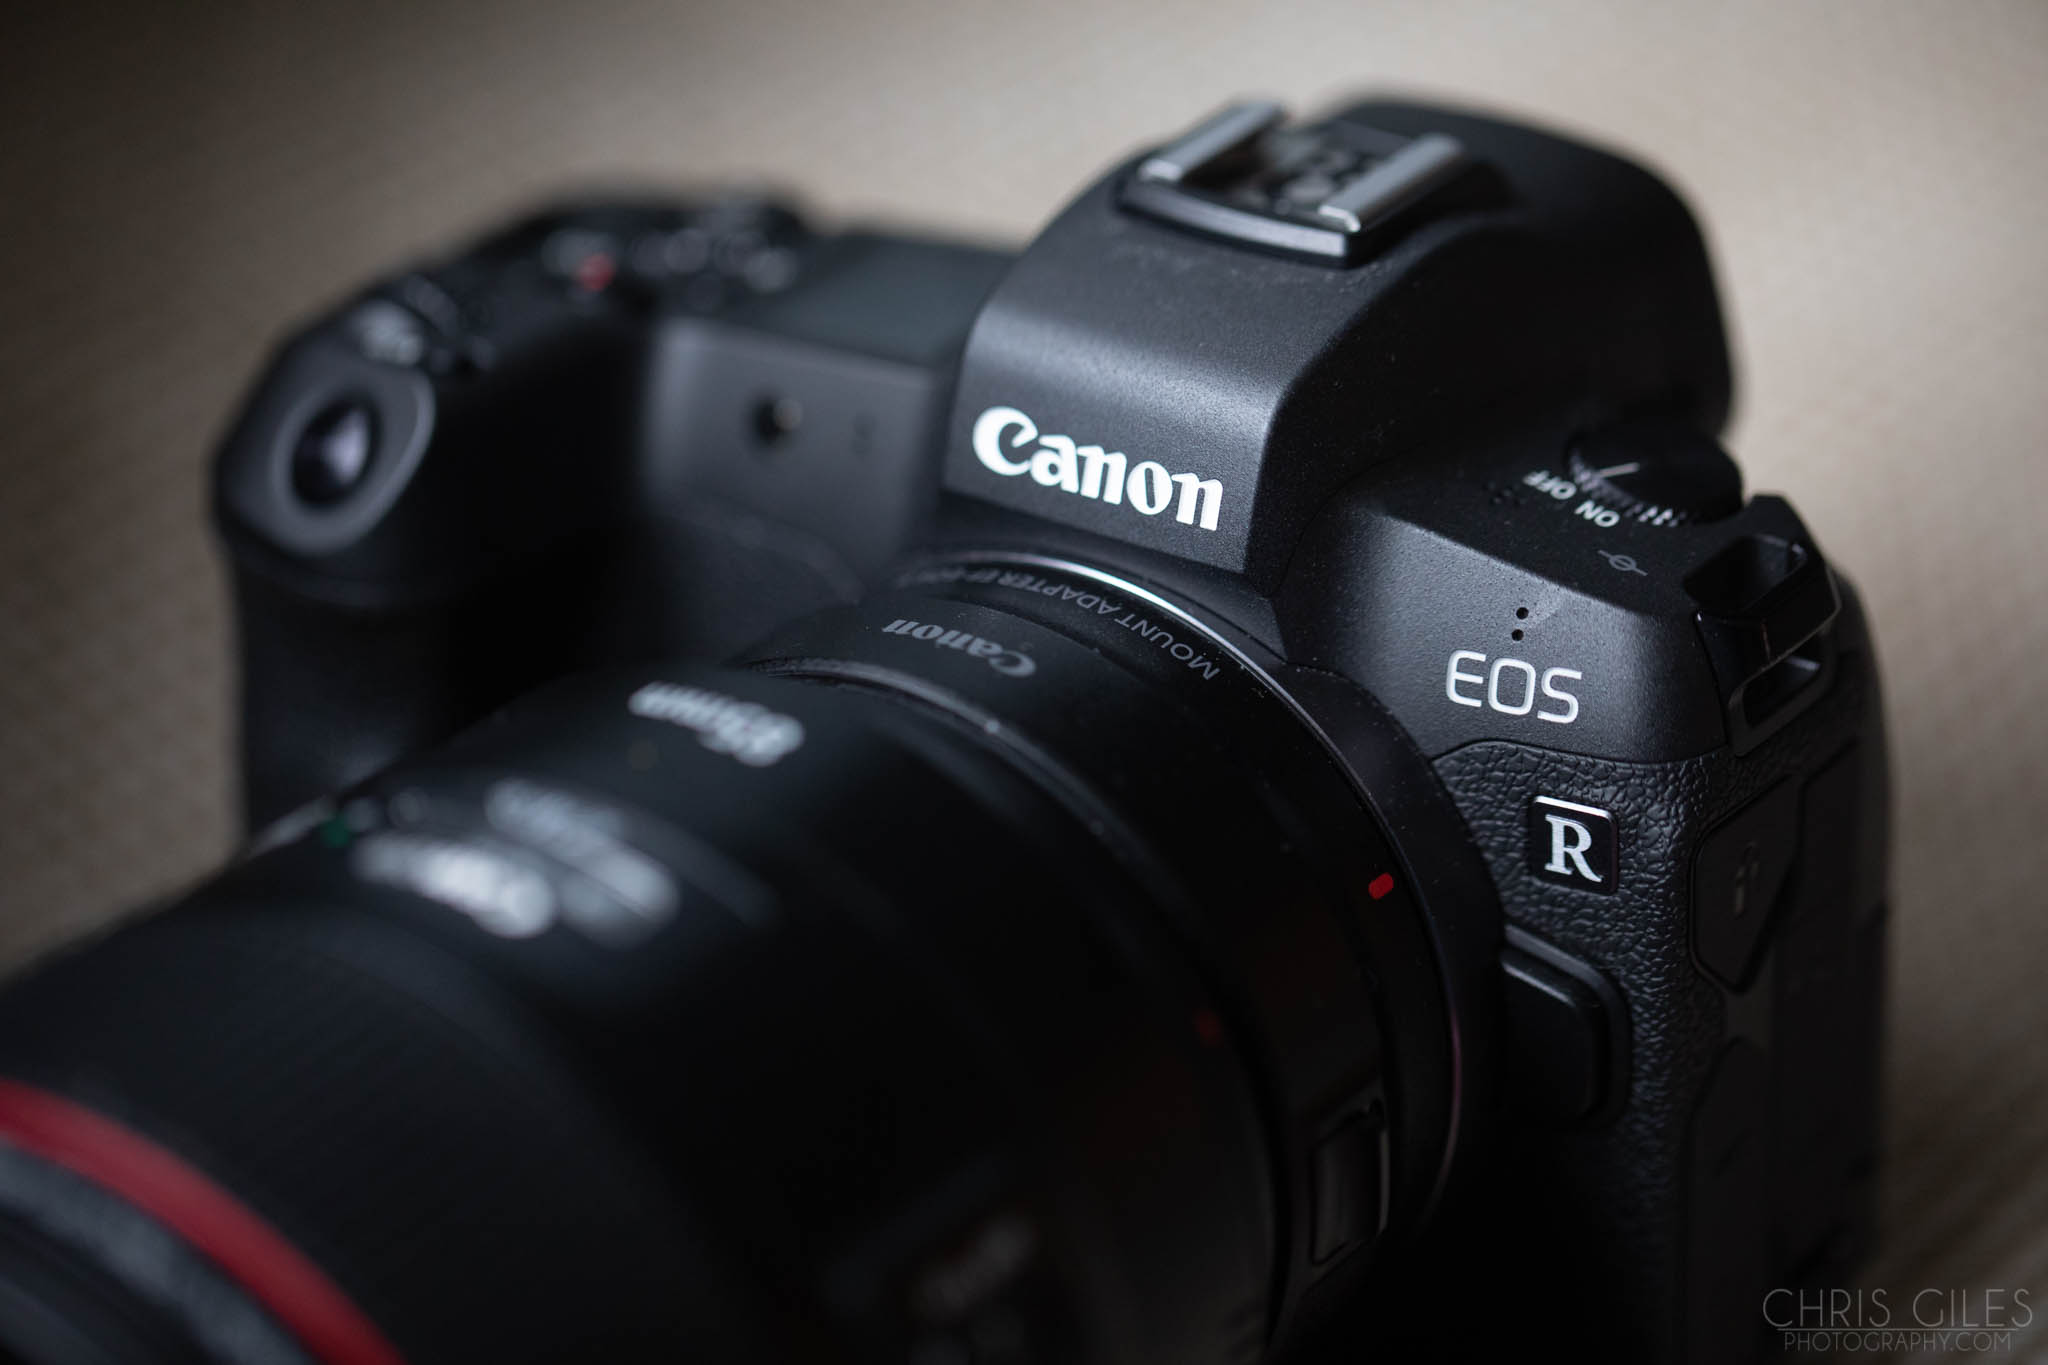 Canon EOS R Mirrorless Review for Weddings - Chris Giles